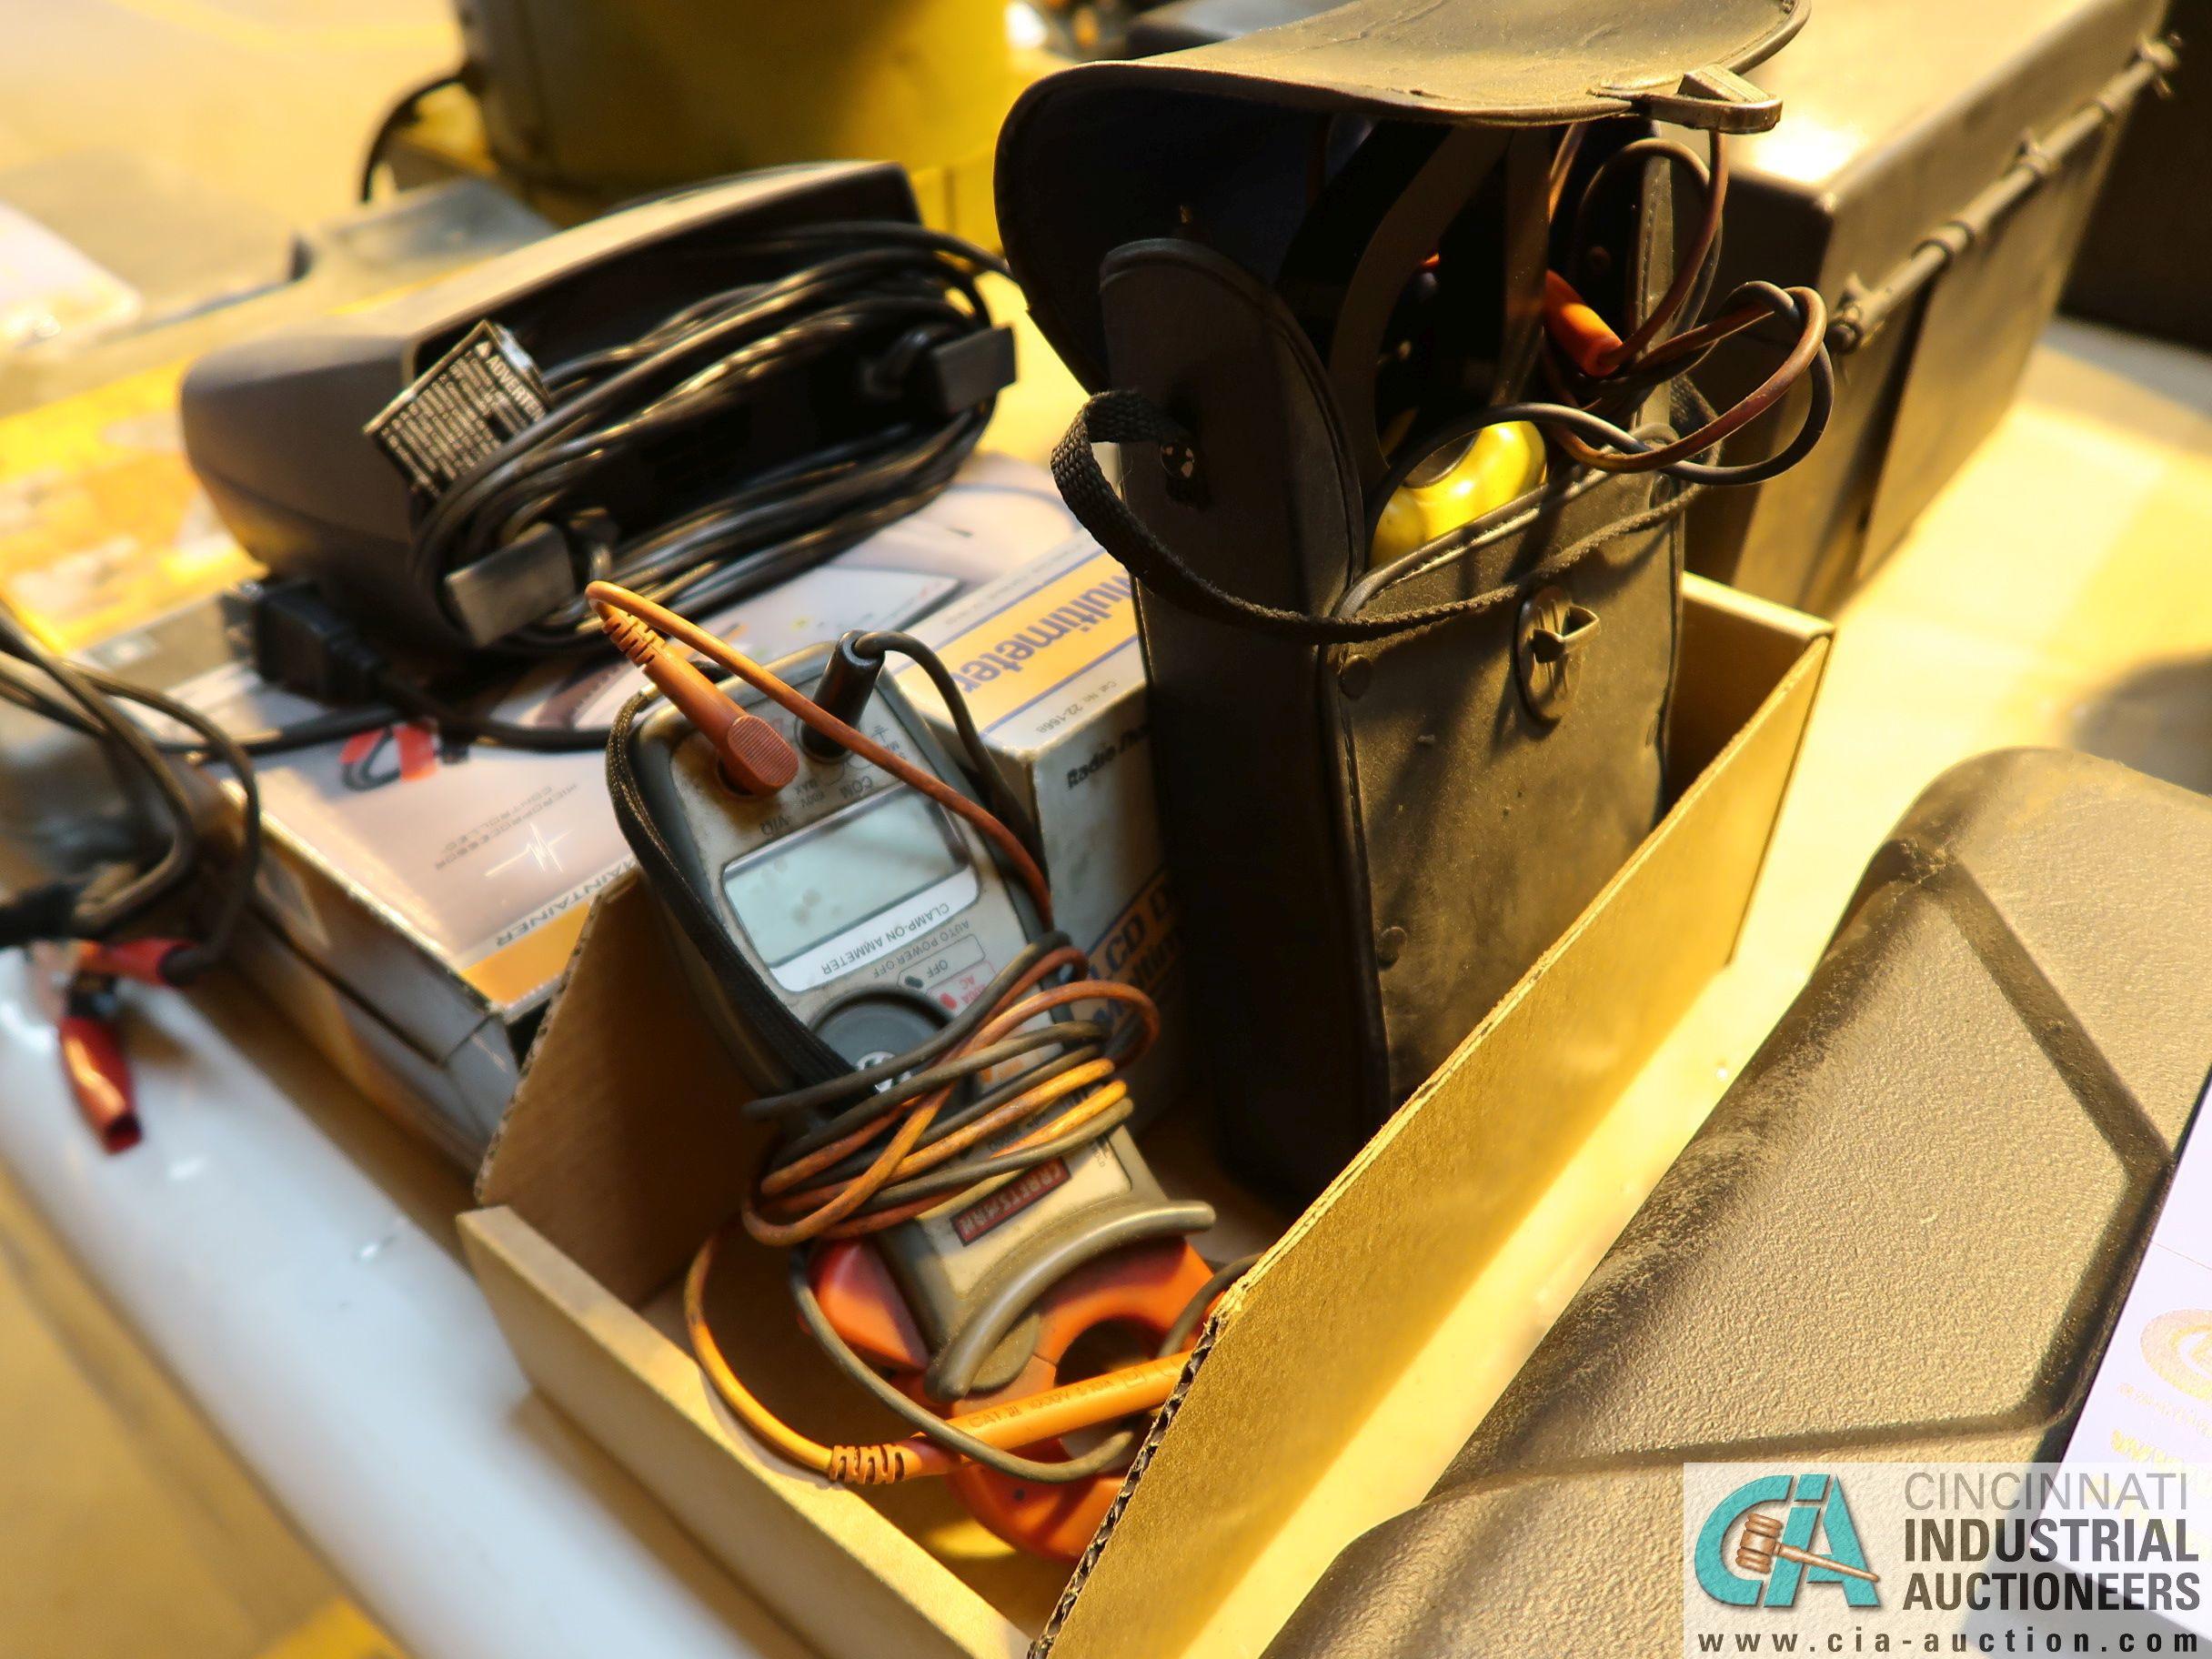 (LOT) (2) ELECTRIC SOLDERING GUNS, SCHUMACHER HOUSEHOLD BATTERY CHARGER AND MISCELLANEOUS - Image 4 of 4